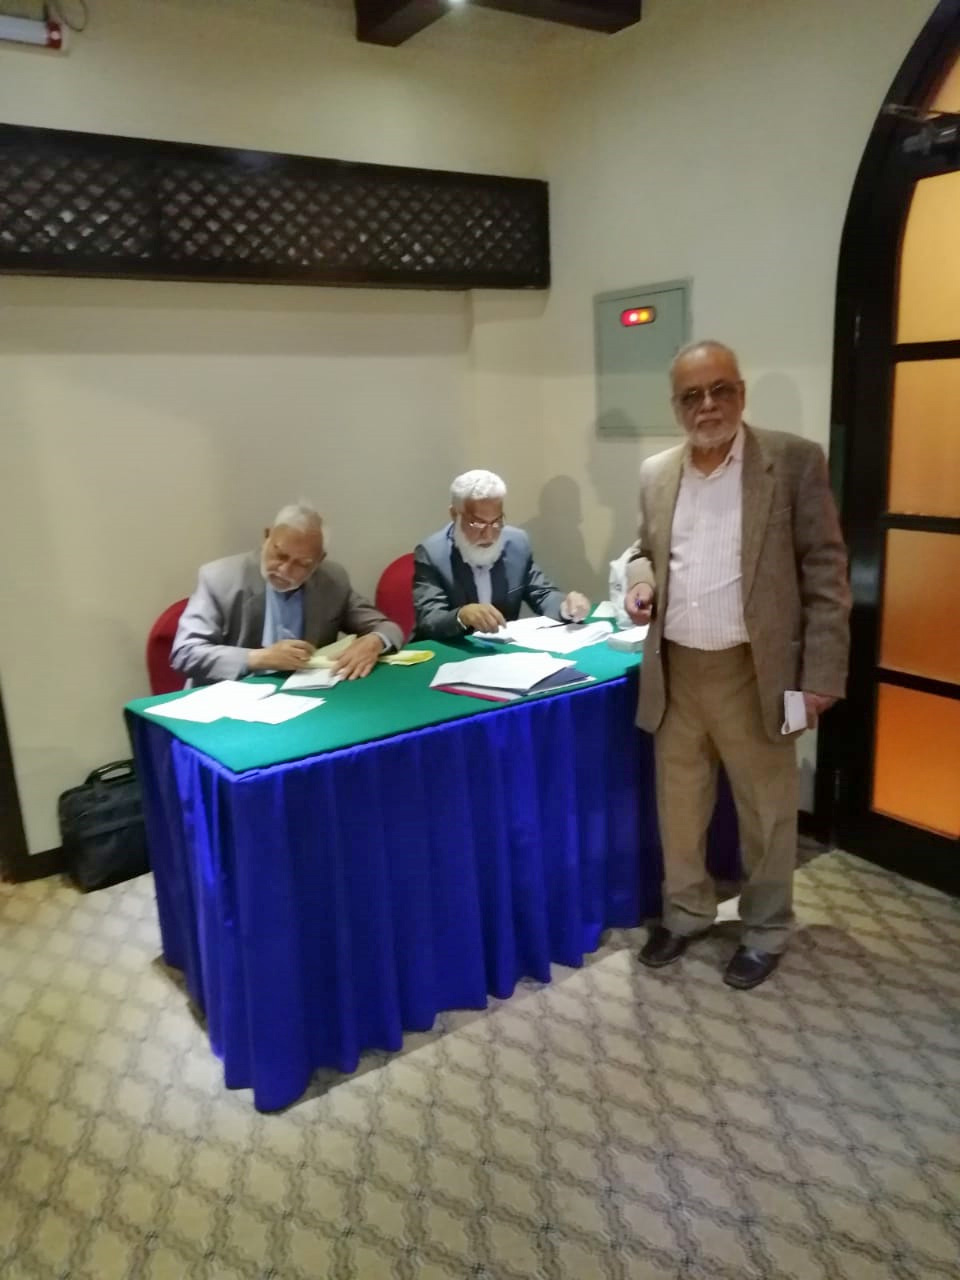 Syed Shabbar Abidi, Jamiluddin Shaikh and Mohammad Abdul Matin at the entrance counter